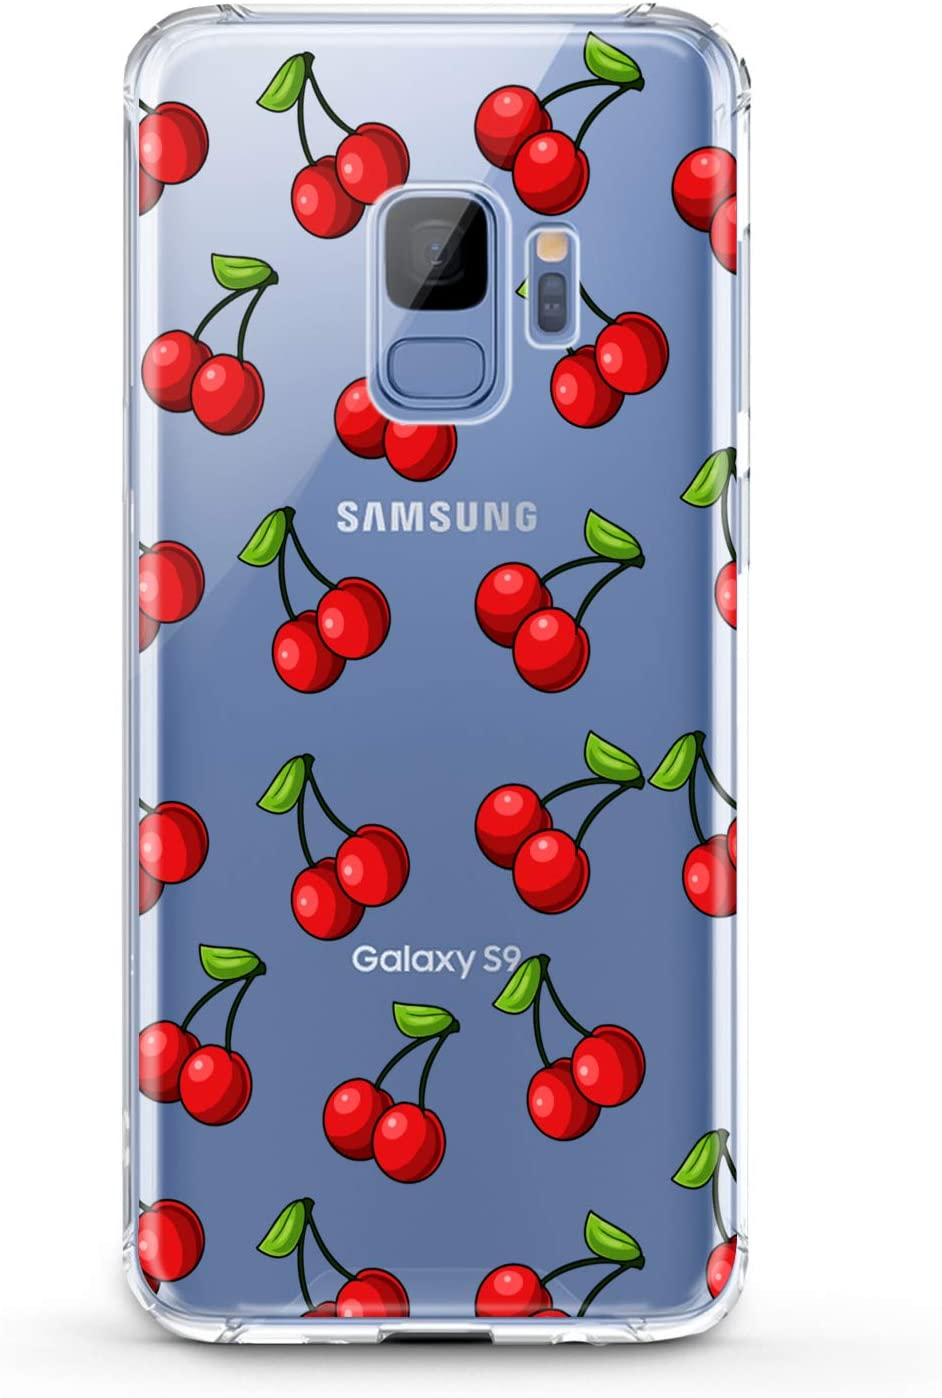 Anreda TPU Case Compatible with Samsung Galaxy J8 J7 Prime J6 Plus J5 J4 Core J2 Summer Red Clear Slim fit Cute Flexible Gift Smooth Tropical Soft Lux Print Fruit Art Food Cover Design Cherry Lovely